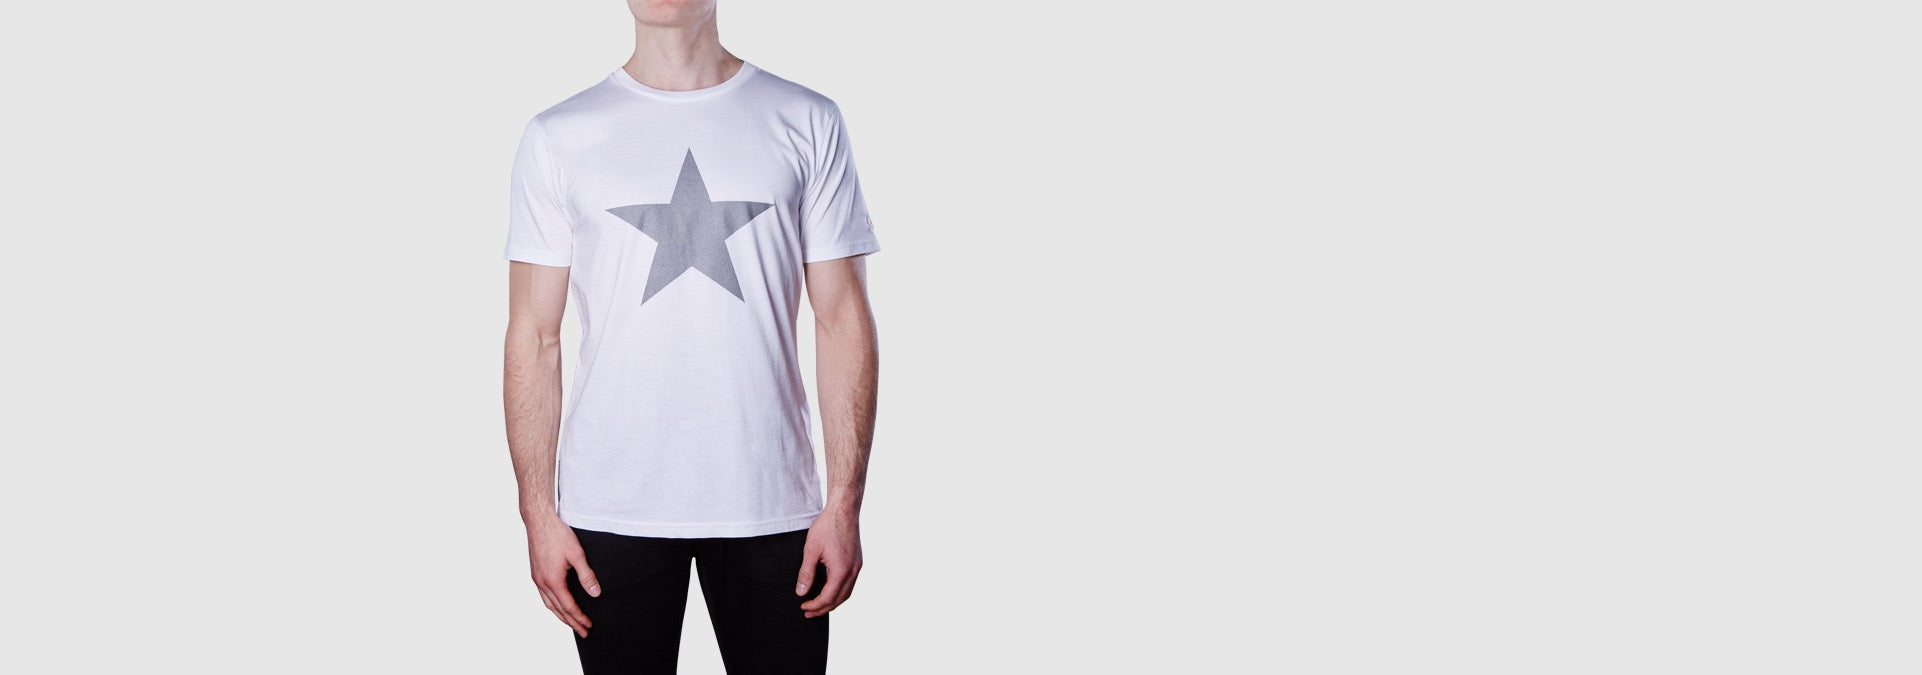 Lone Star Organic Cotton T-Shirt White